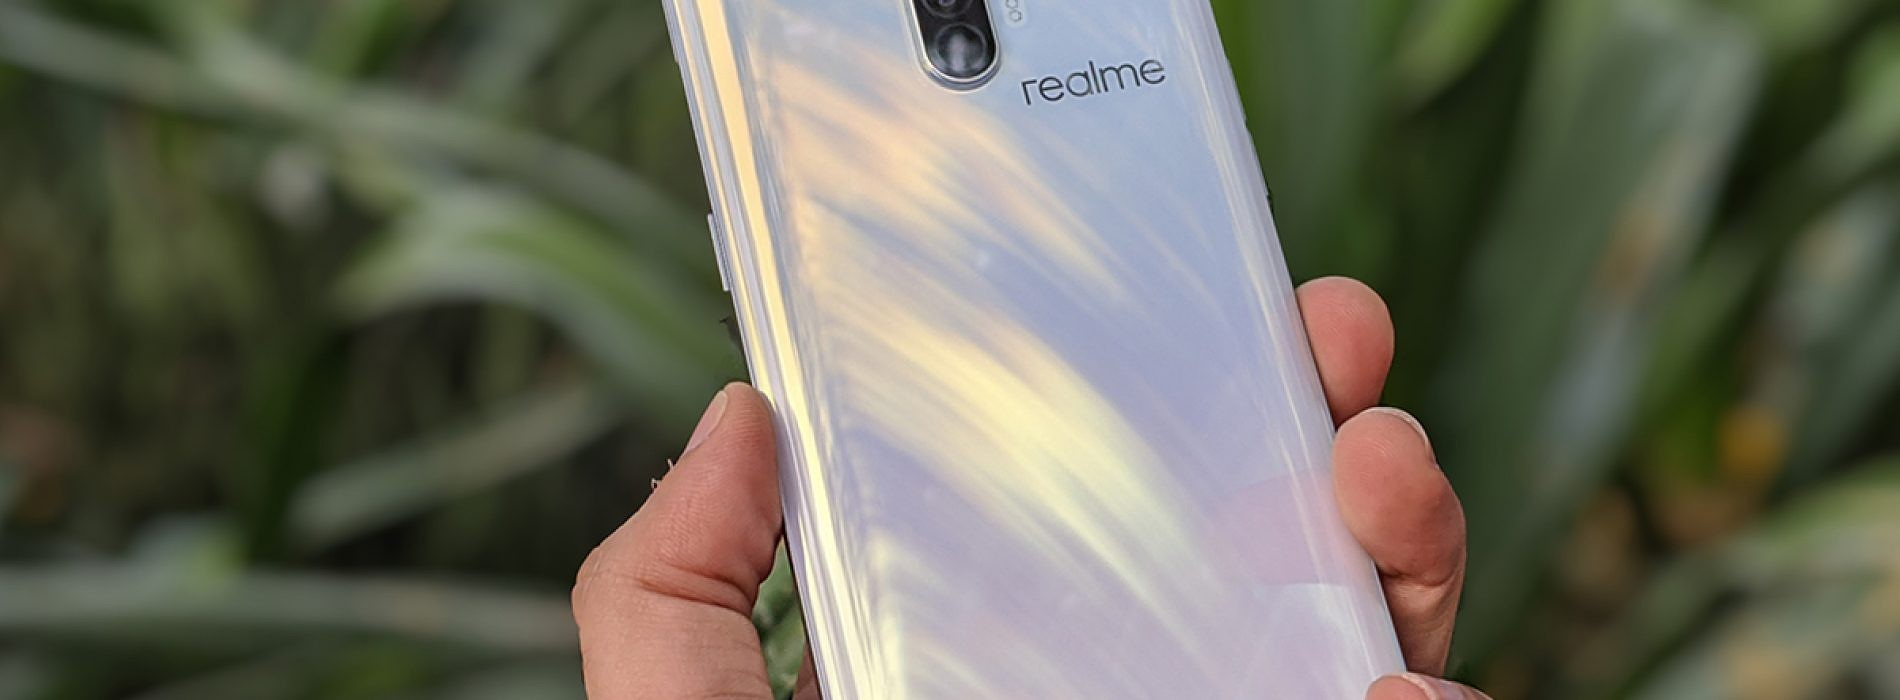 Realme X2 Pro 6gb 64gb Variant Launched In India